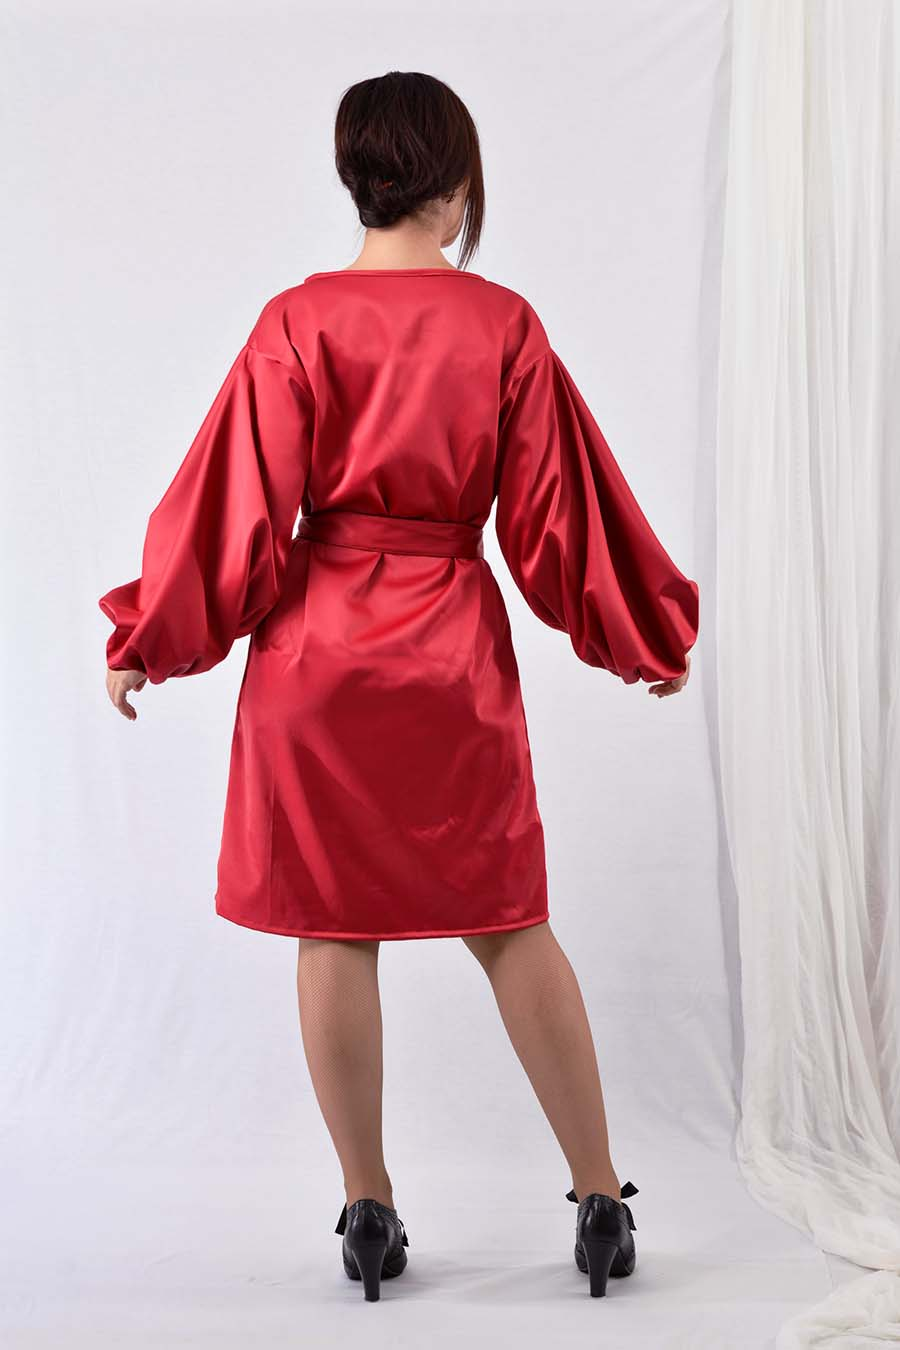 Red satin dress with puffy sleeves and belt from back